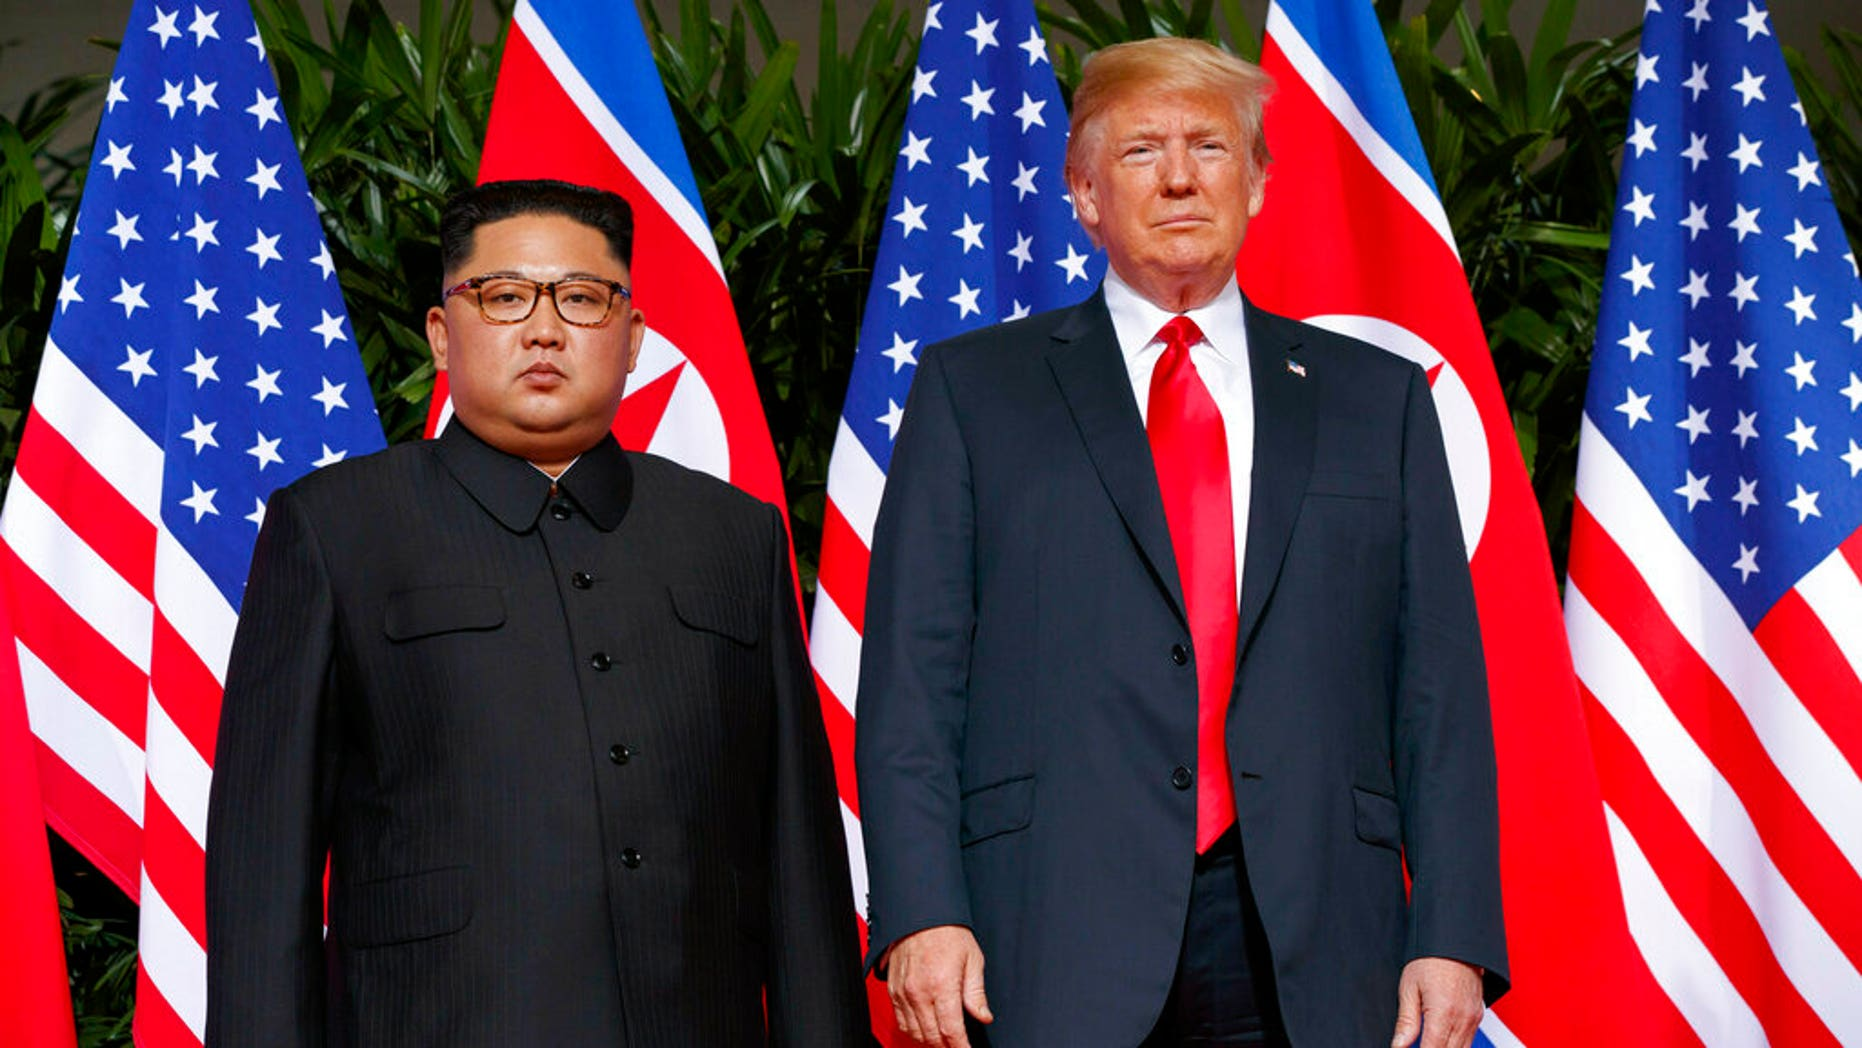 In this June. 12, 2018, file photo, U.S. President Donald Trump, right, meets with North Korean leader Kim Jong Un on Sentosa Island, in Singapore. A second summit between President Trump and North Korean leader Kim Jong Un will take place next month, the White House announced Friday. <br>